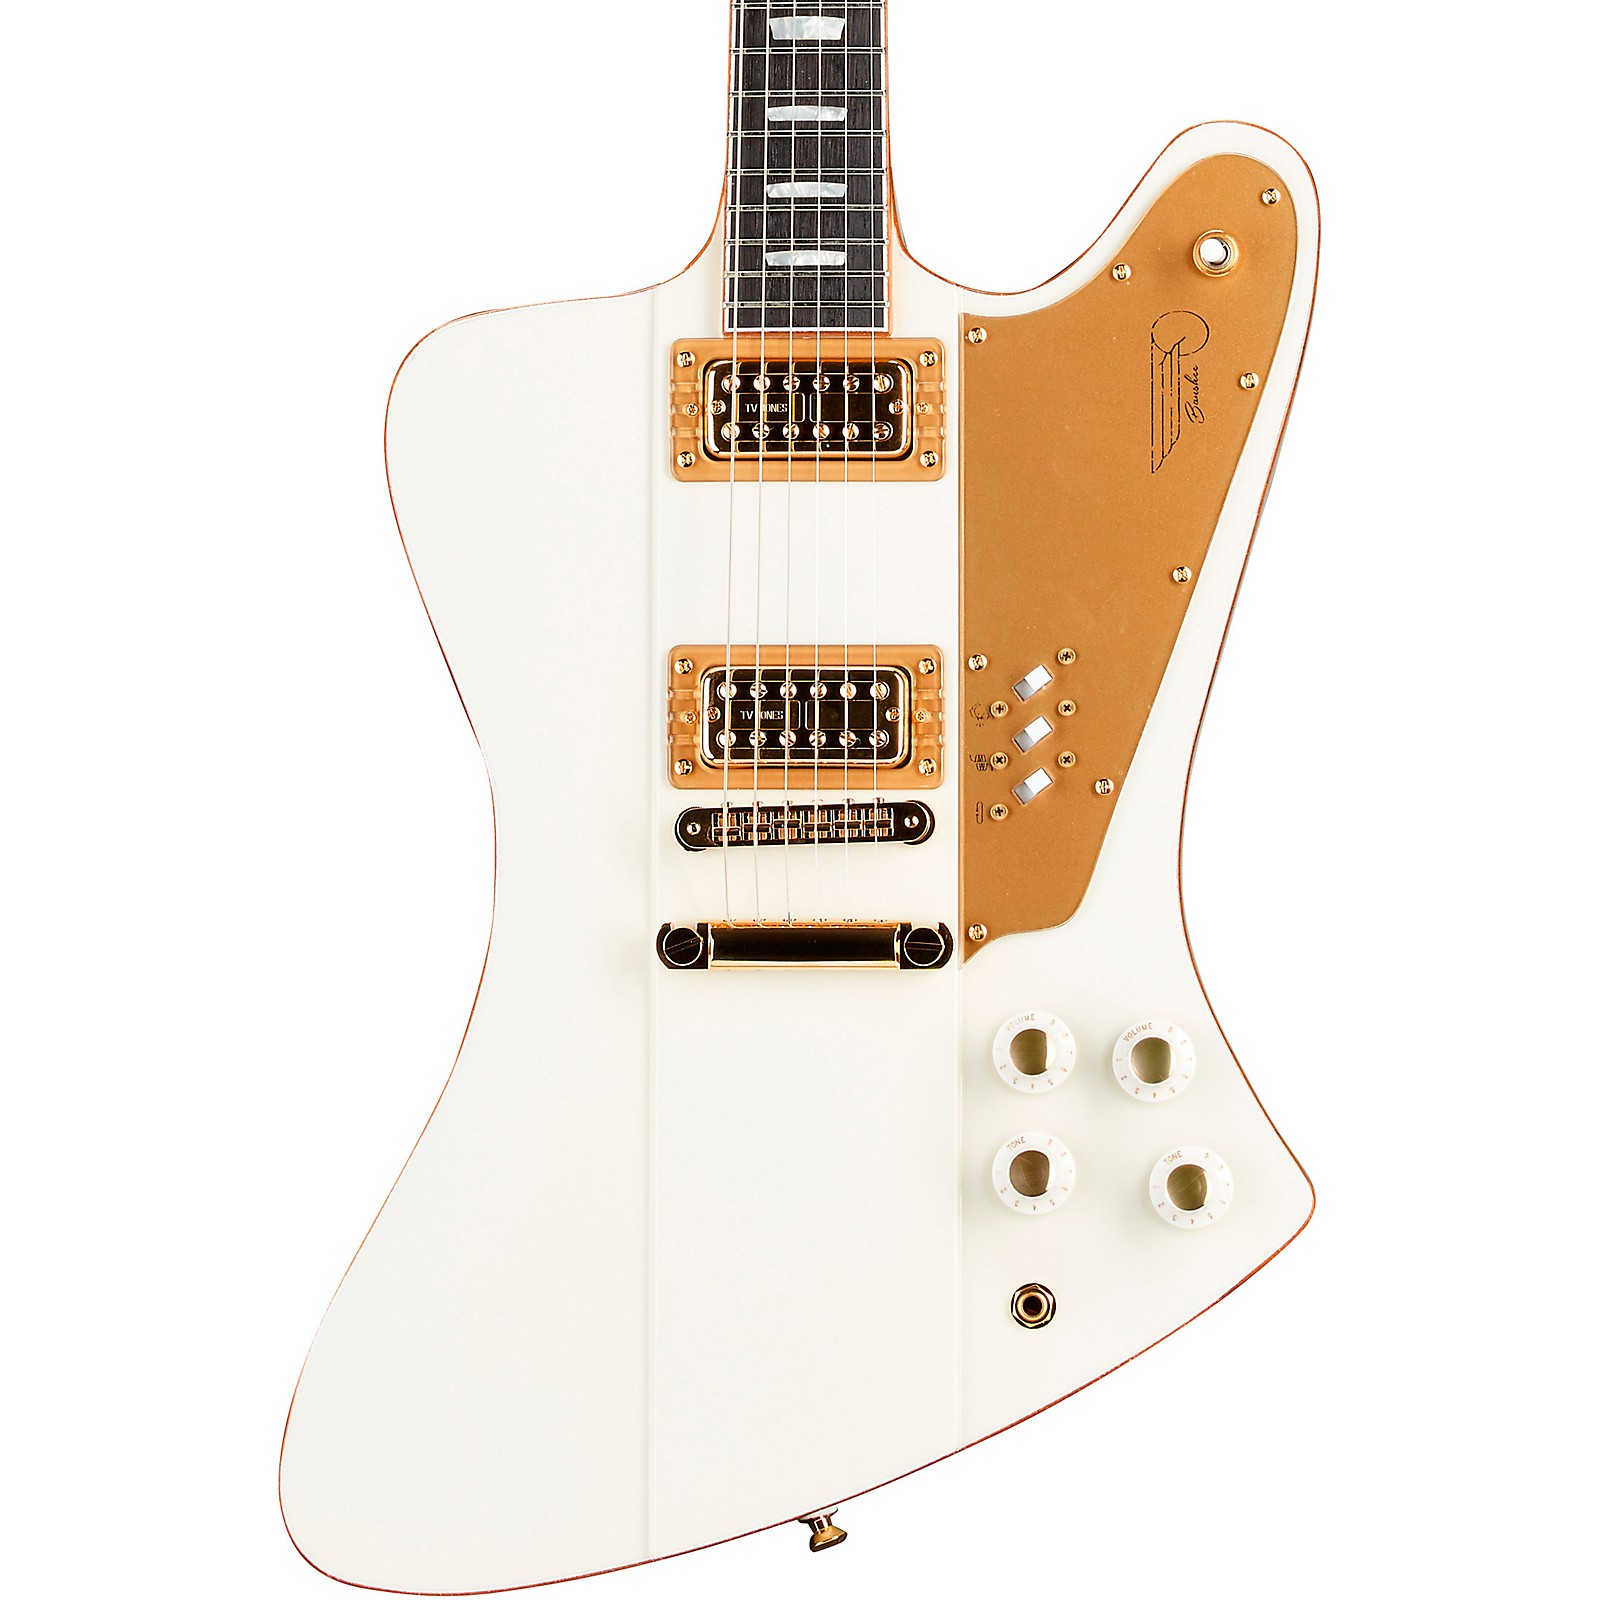 Kauer Guitars Banshee White Hawk Electric Guitar